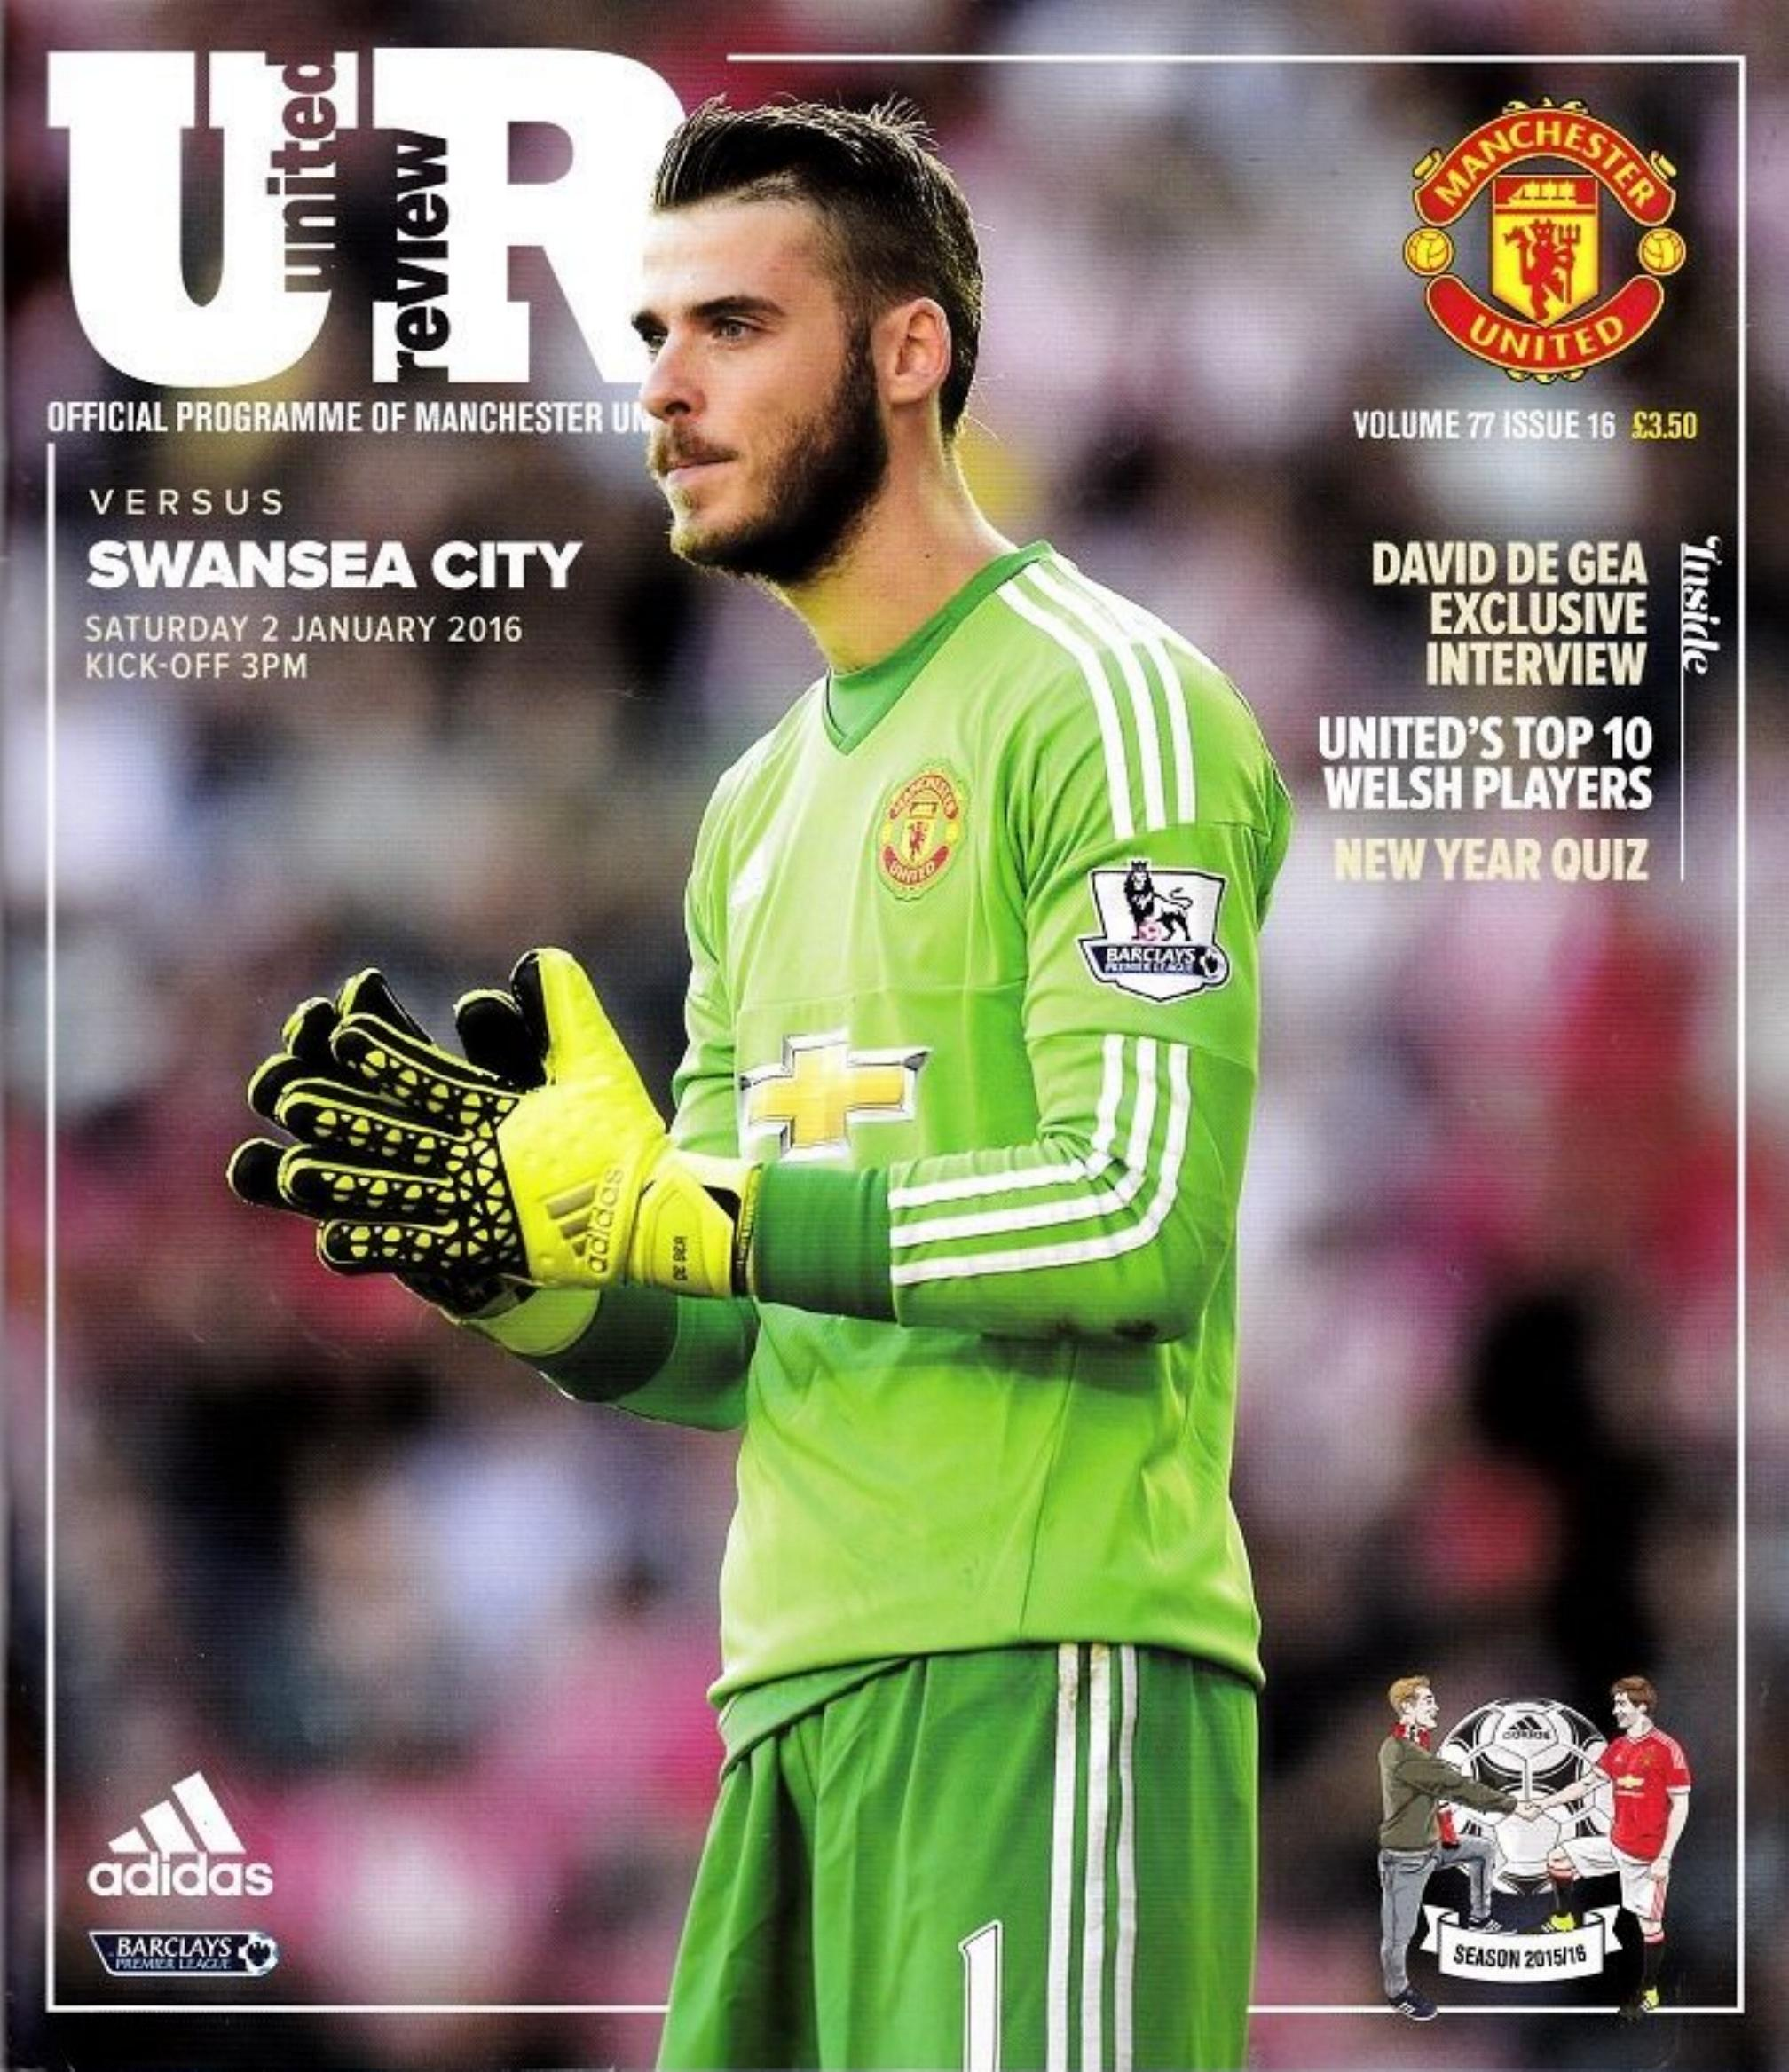 MAN UTD v SWANSEA CITY 2015/16